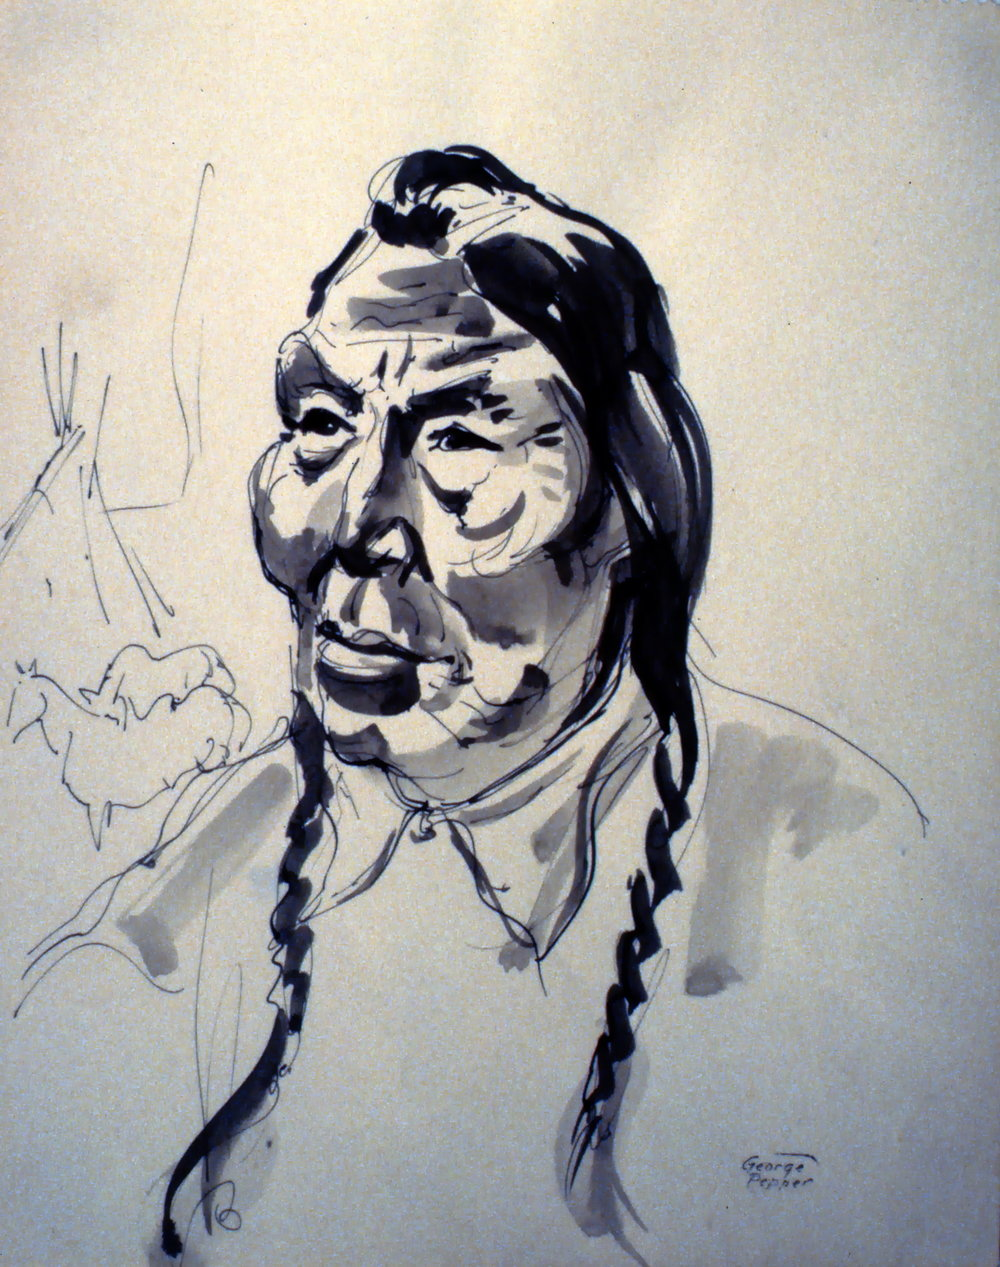 Indian Chief, n.d.